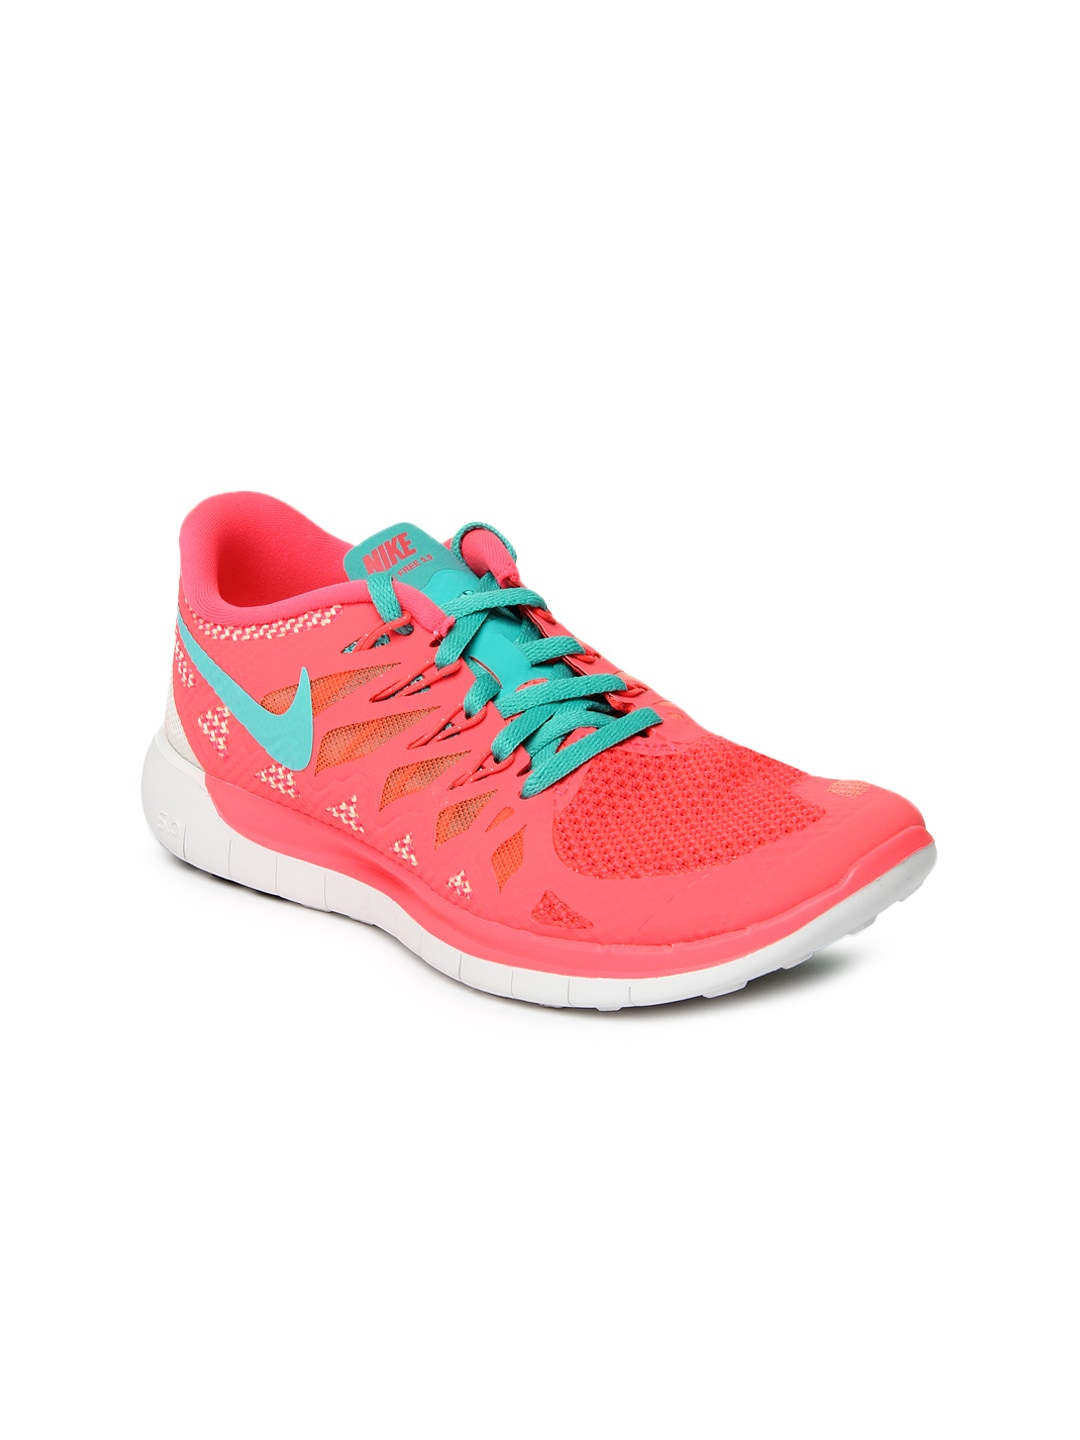 Awesome Nike Running Shoes For Women Neon Colors Neon Blue And Pink Nike